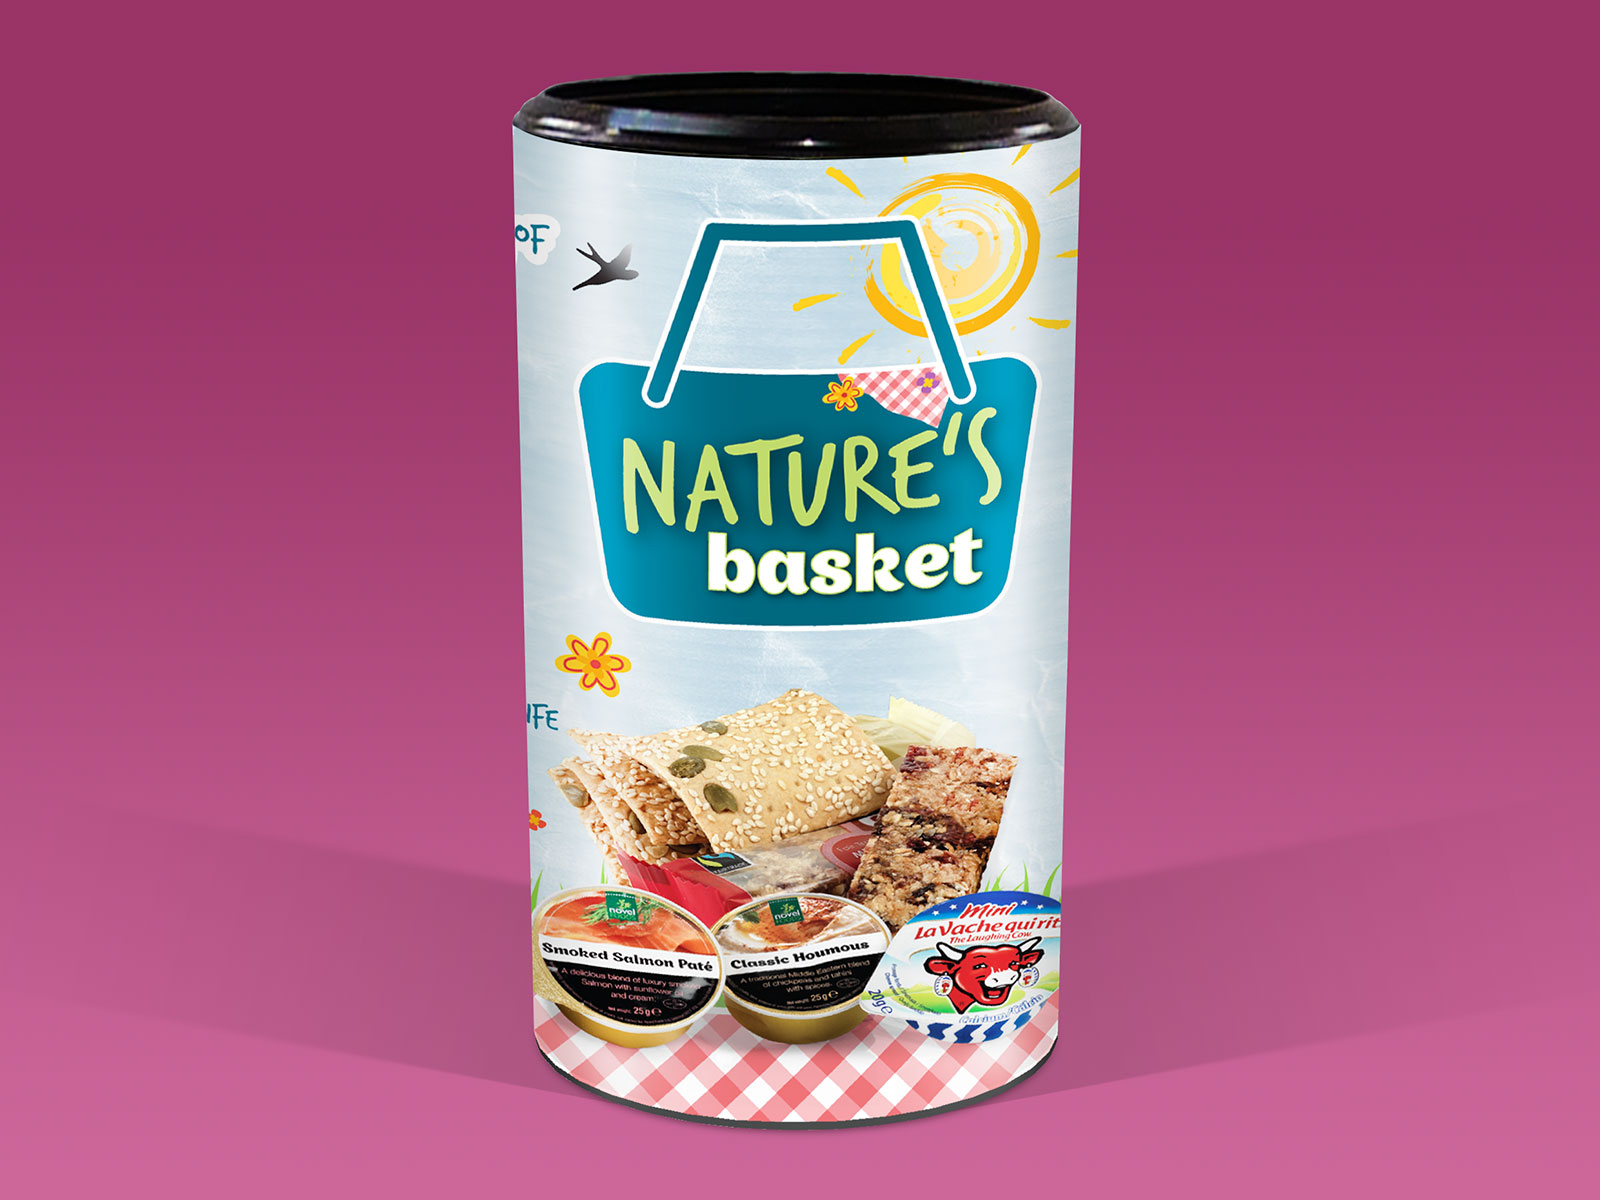 Novel Foods Natures Basket Packaging Design